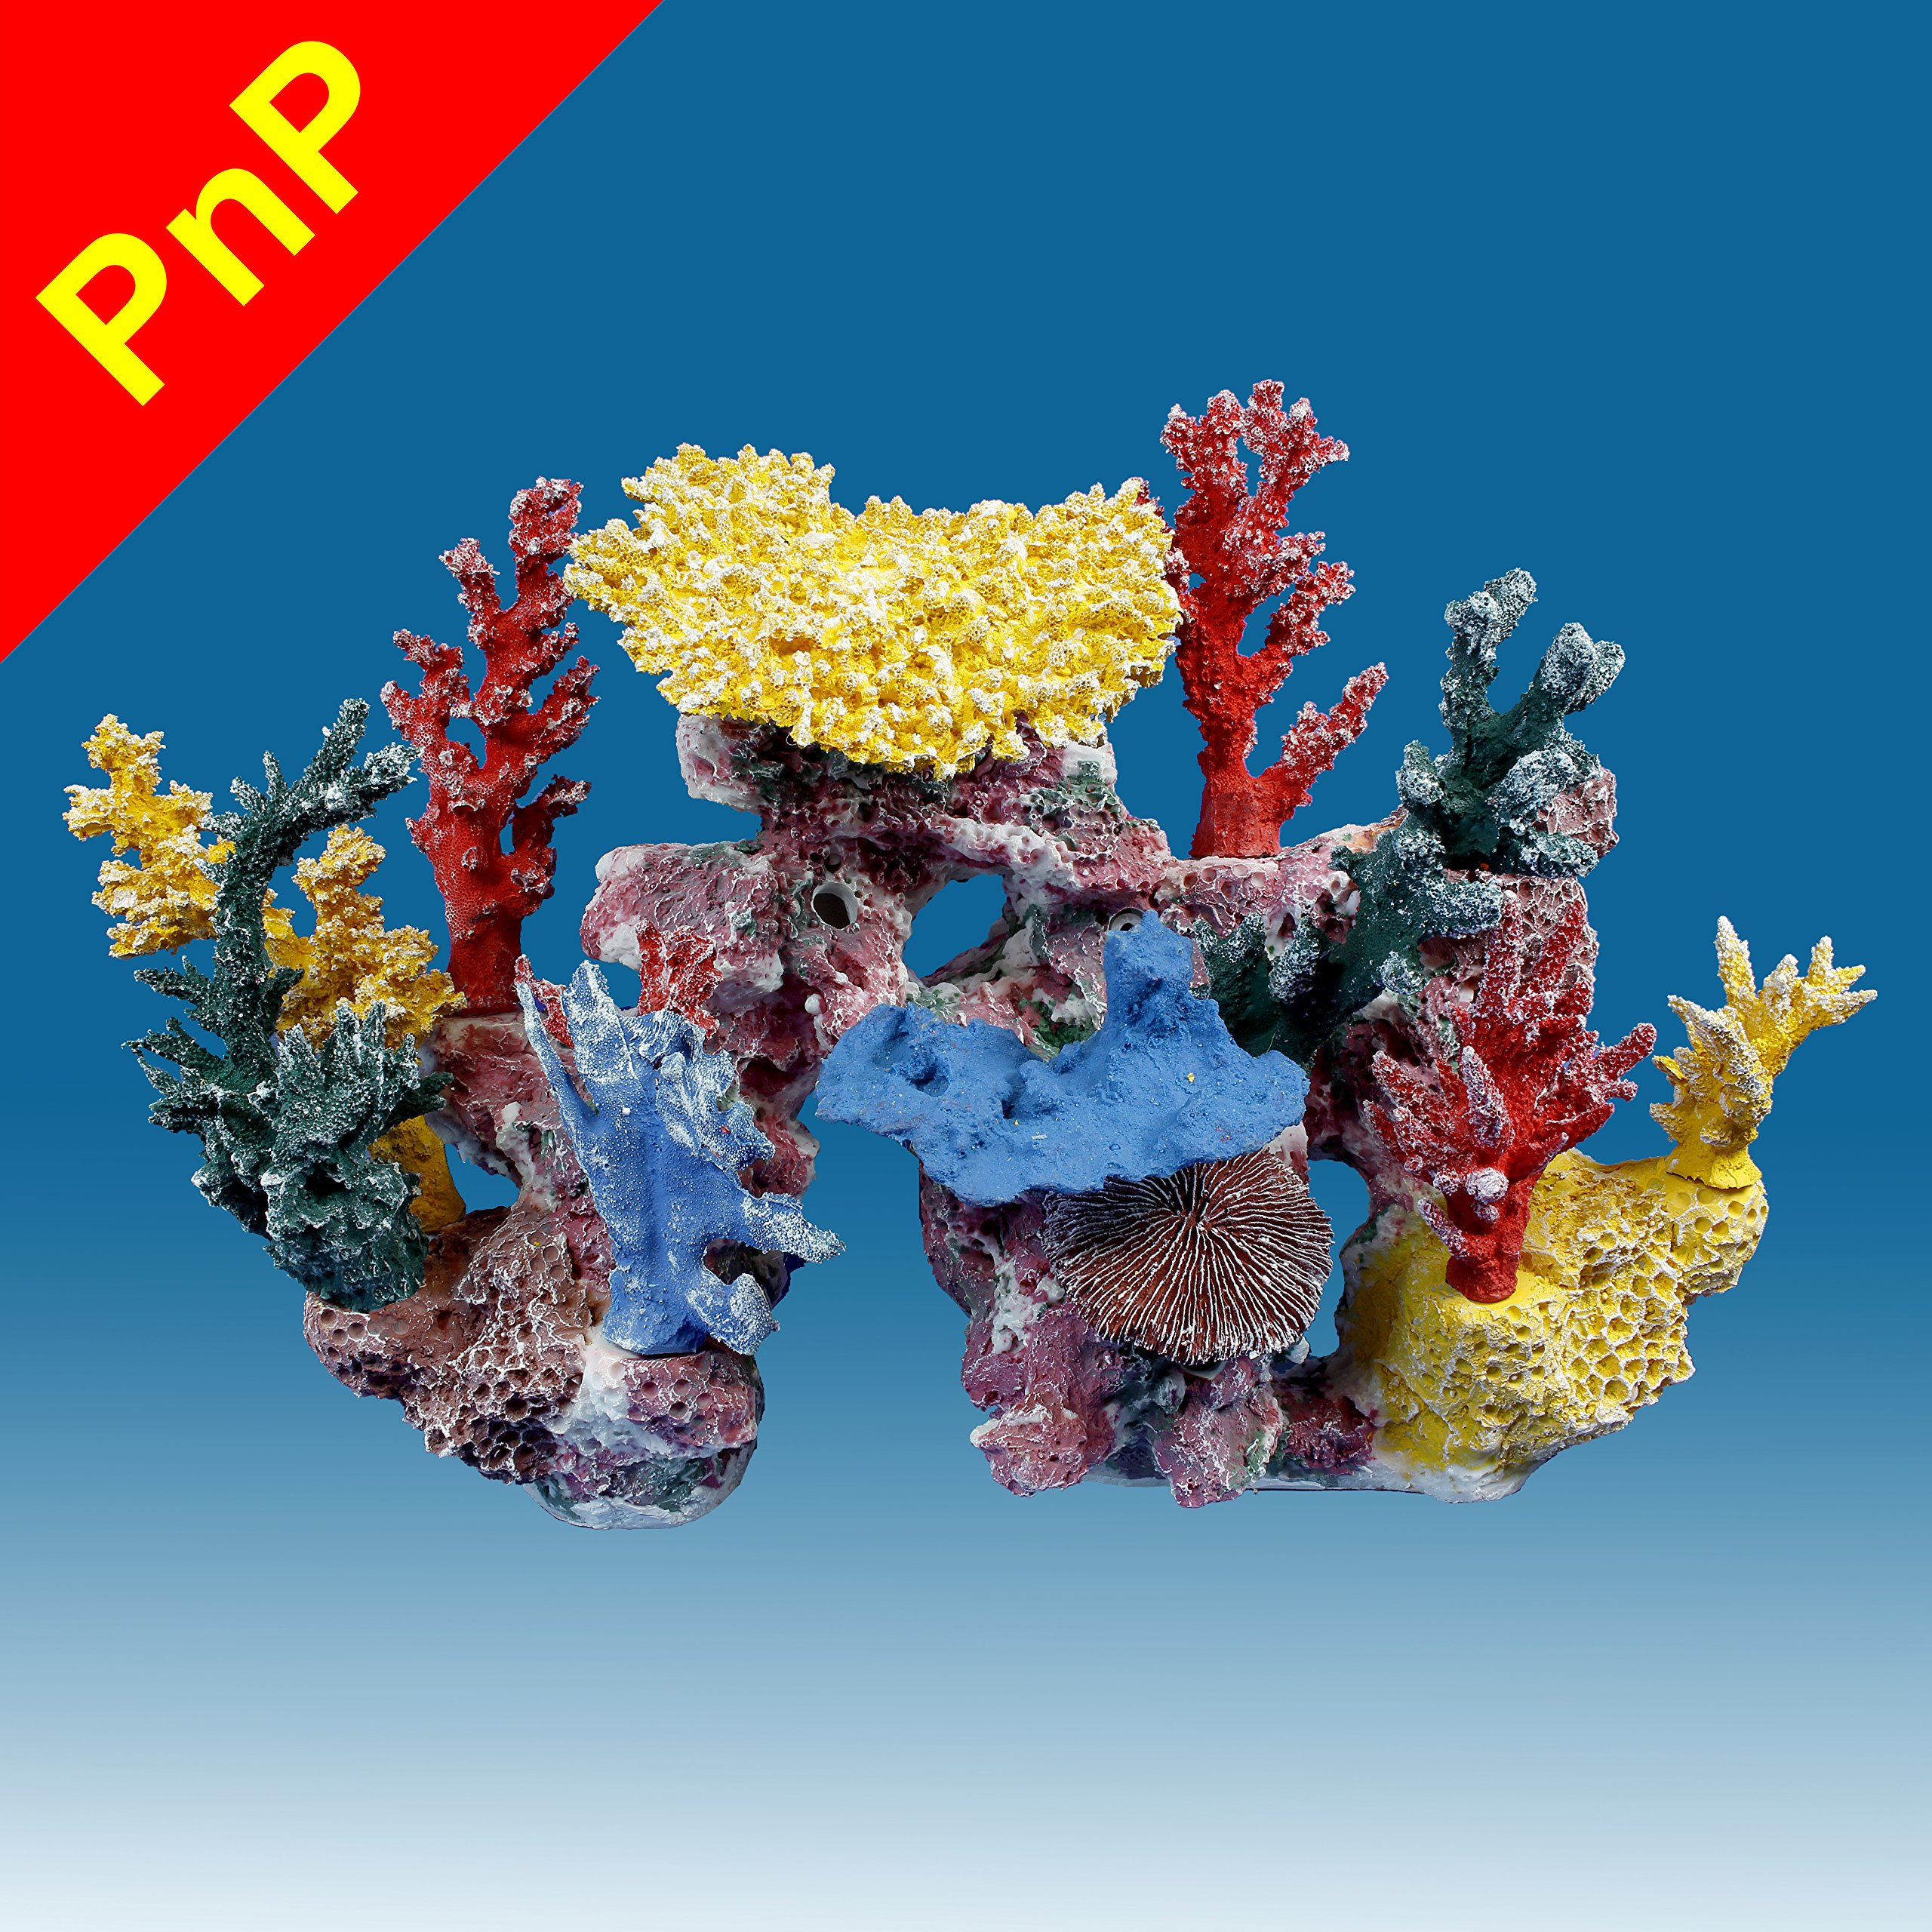 Instant Reef DM047PNP Large Artificial Coral Inserts Decor, Fake Coral Reef Decorations for Colorful Freshwater Fish Aquariums, Marine and Saltwater Fish Tanks by Instant Reef